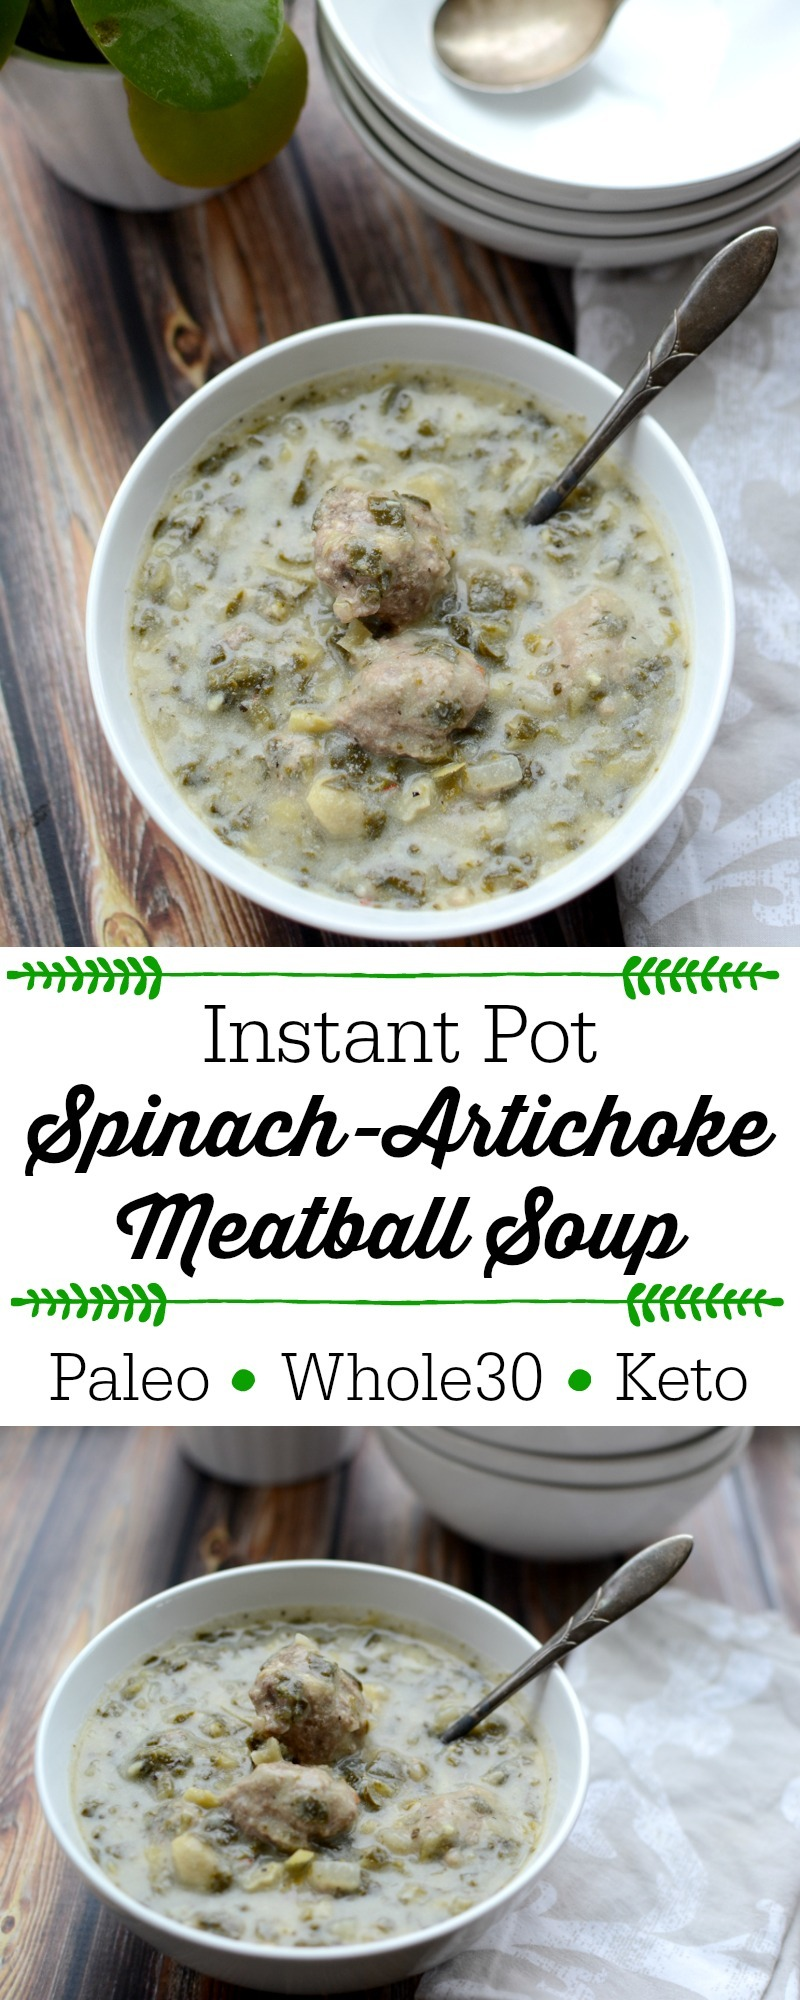 instant pot spinach artichoke meatball soup in white bowl with spoon